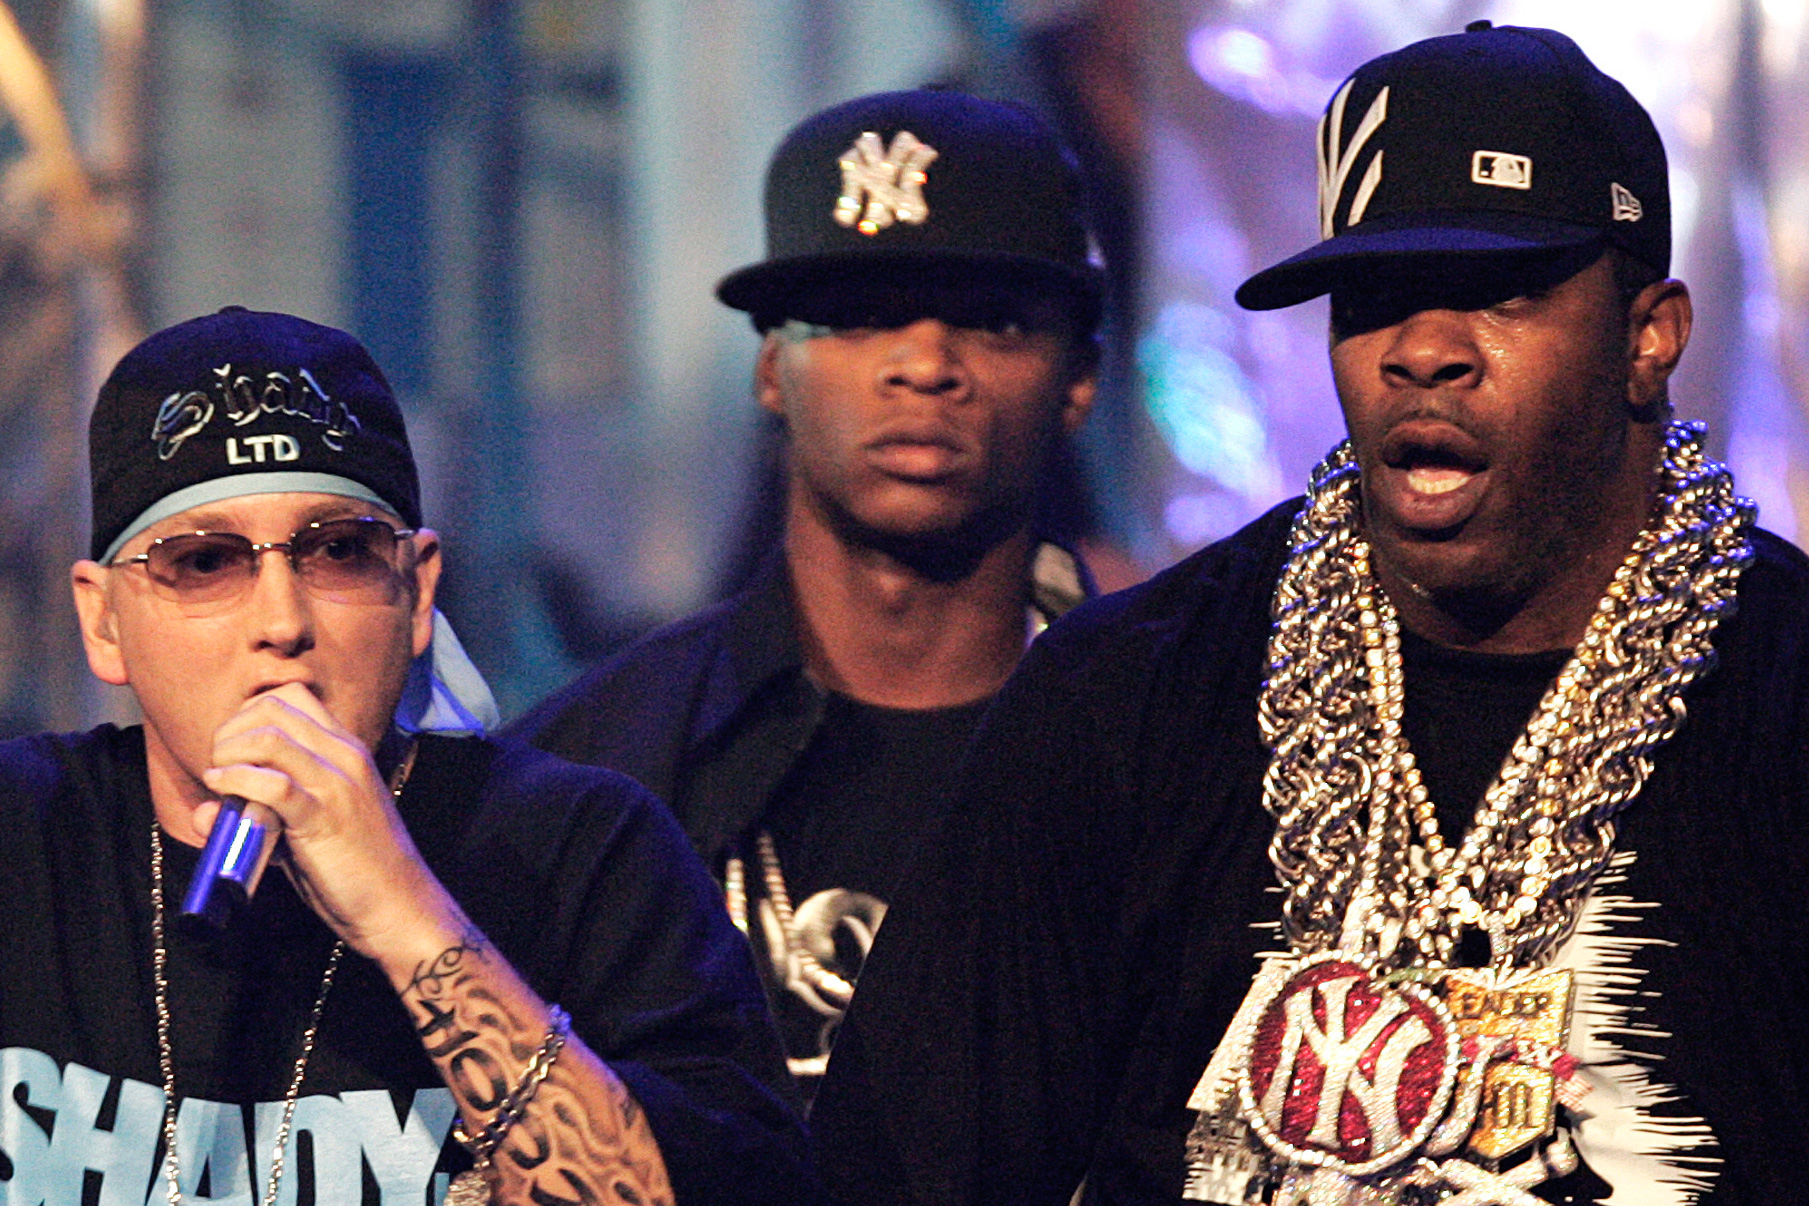 busta rhymes confirms collaboration with eminem announces release date